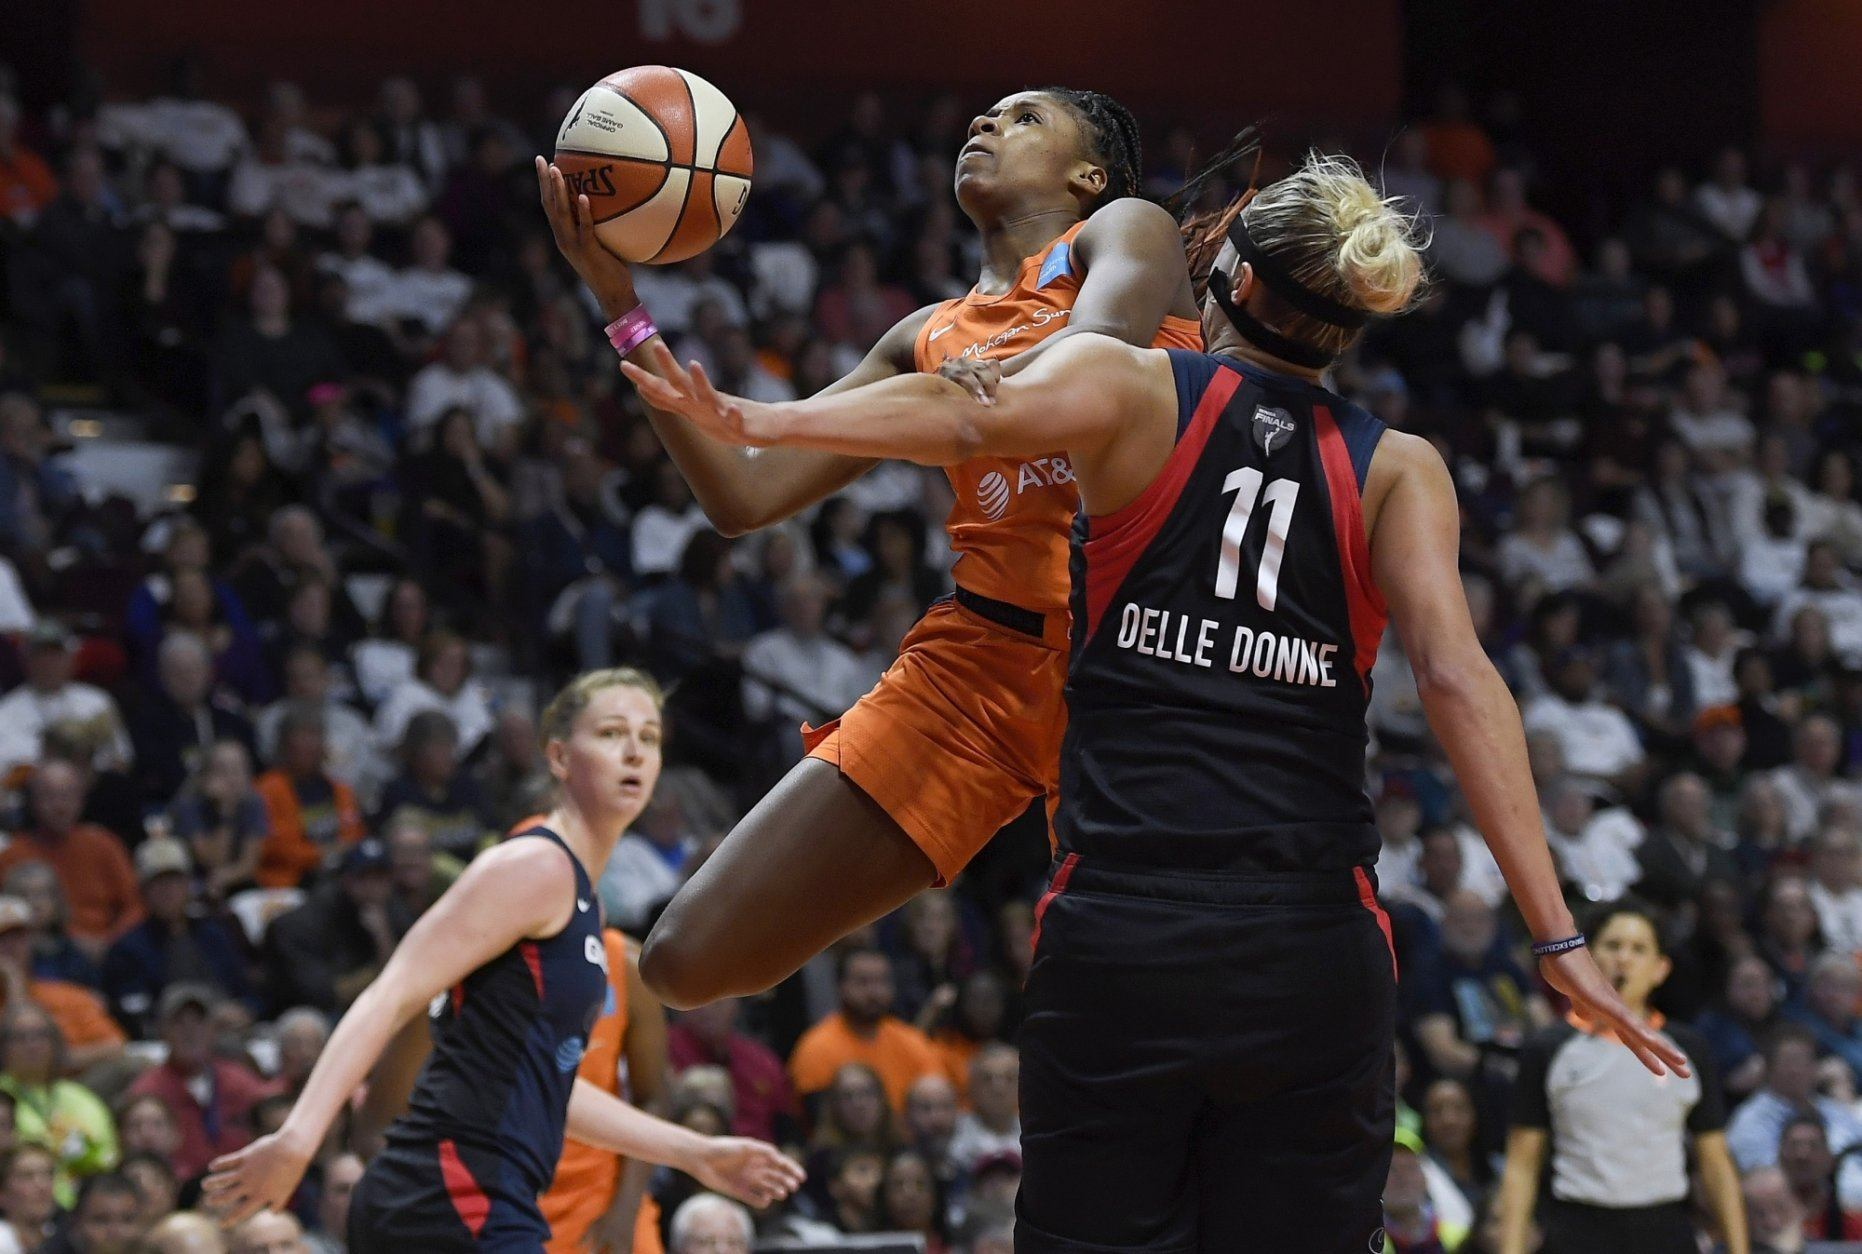 Connecticut Sun's Bria Holmes, rear, drives against Washington Mystics' Elena Delle Donne during the first half in Game 3 of basketball's WNBA Finals, Sunday, Oct. 6, 2019, in Uncasville, Conn. (AP Photo/Jessica Hill)